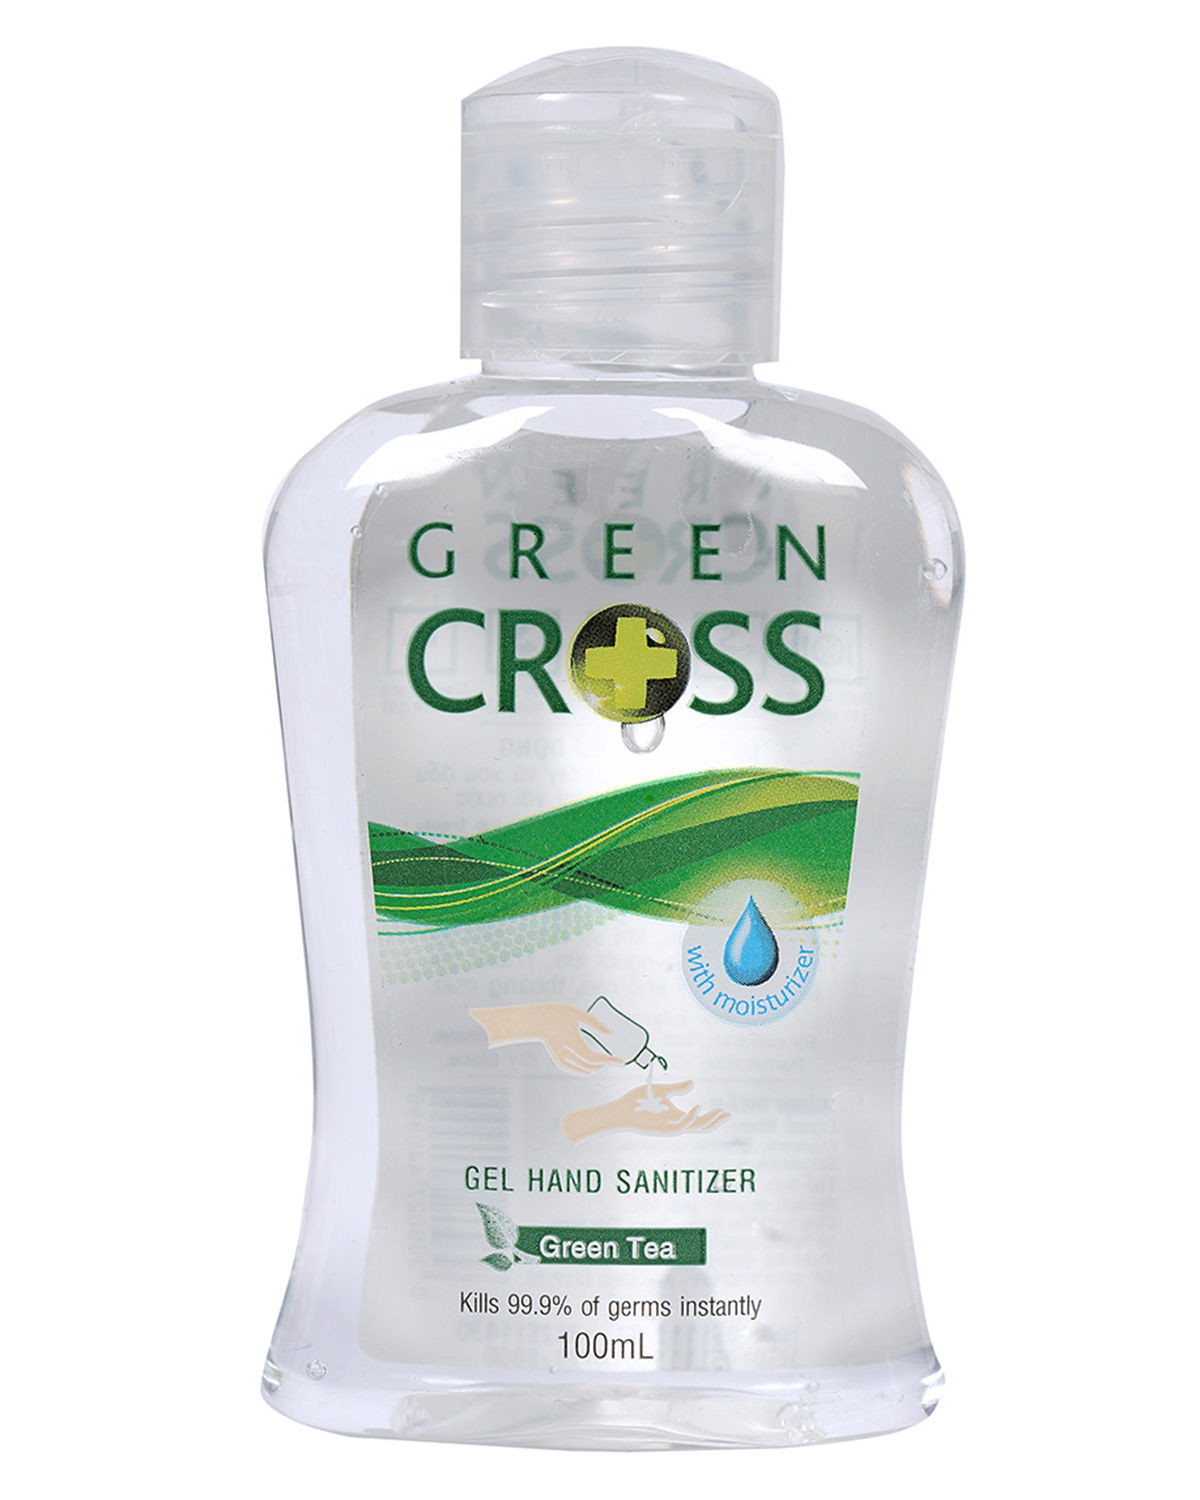 GREEN CROSS GEL RT TRA XANH -GREEN TEA 100ML